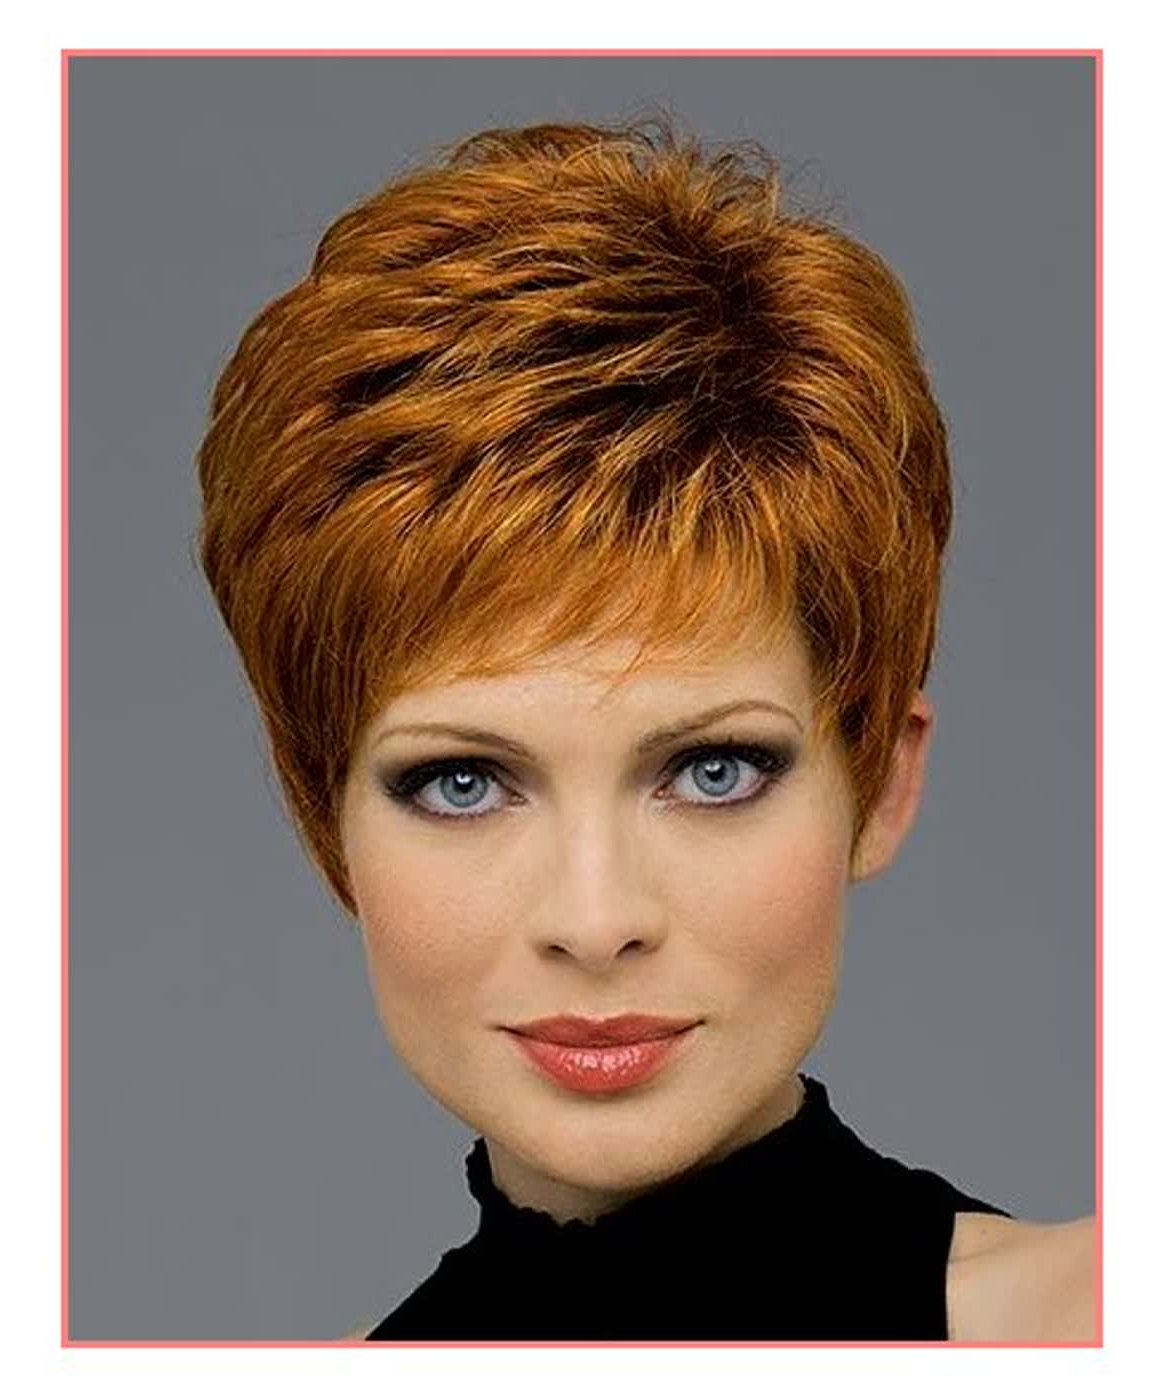 Simple Ladies Hairstyles For Over 50S – Women Hairstyles Throughout Over 50S Short Hairstyles (View 13 of 25)